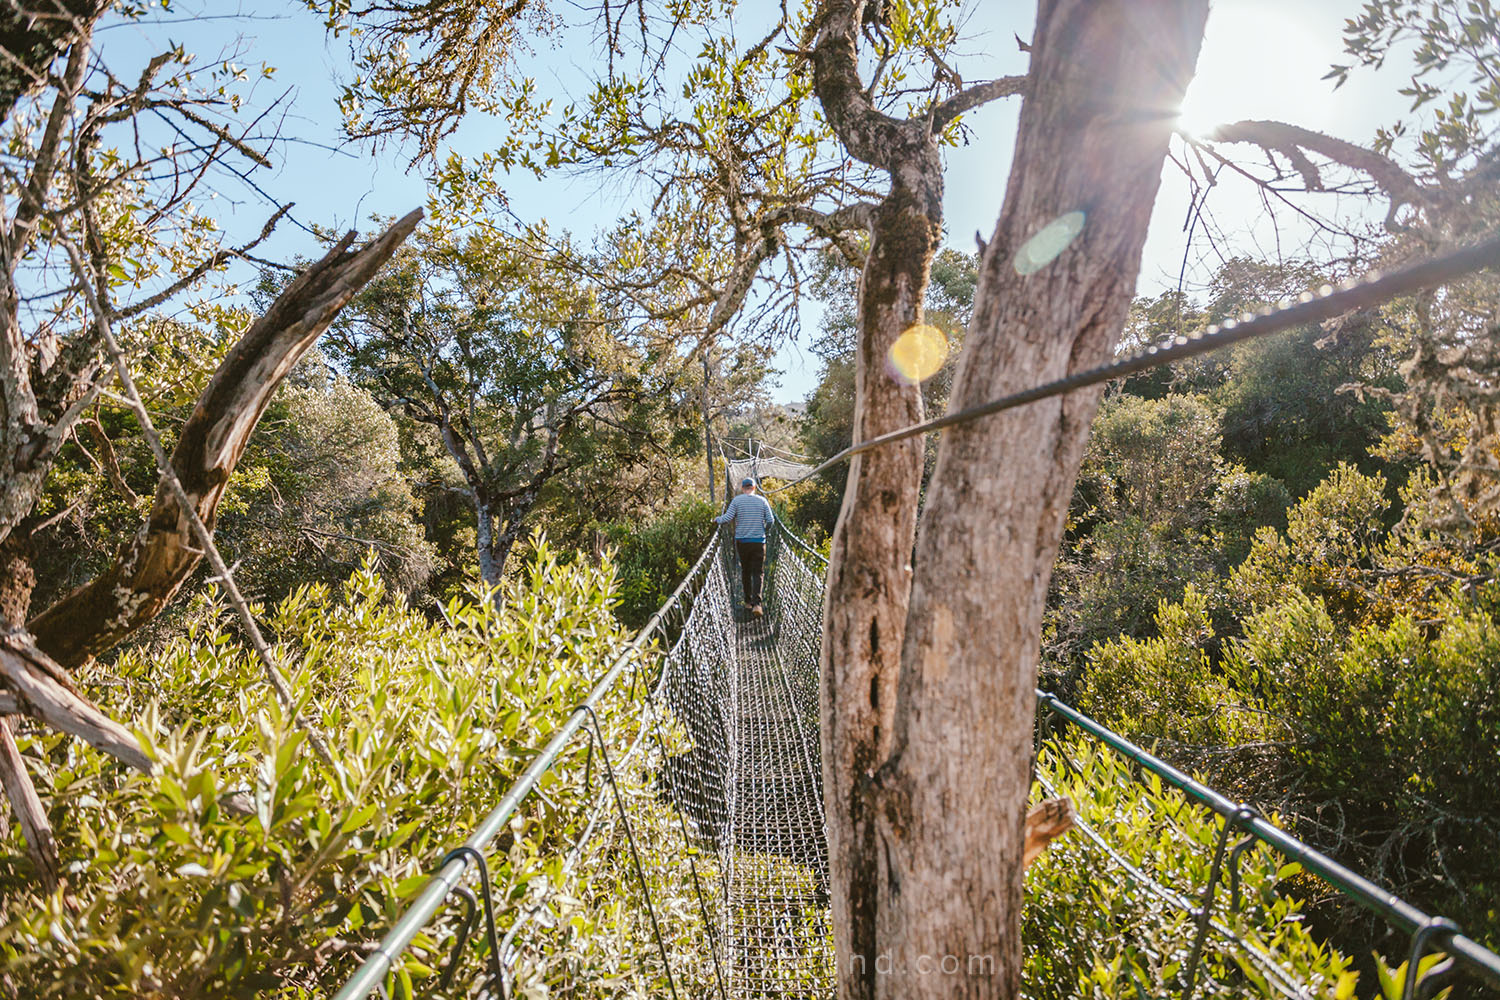 005_HANDZAROUND_NGARE_NDARE_FOREST_CANOPY_WALK_NRT_THE_BIG_NORTH_LAIKIPIA_KENYA_AFRICA.jpg